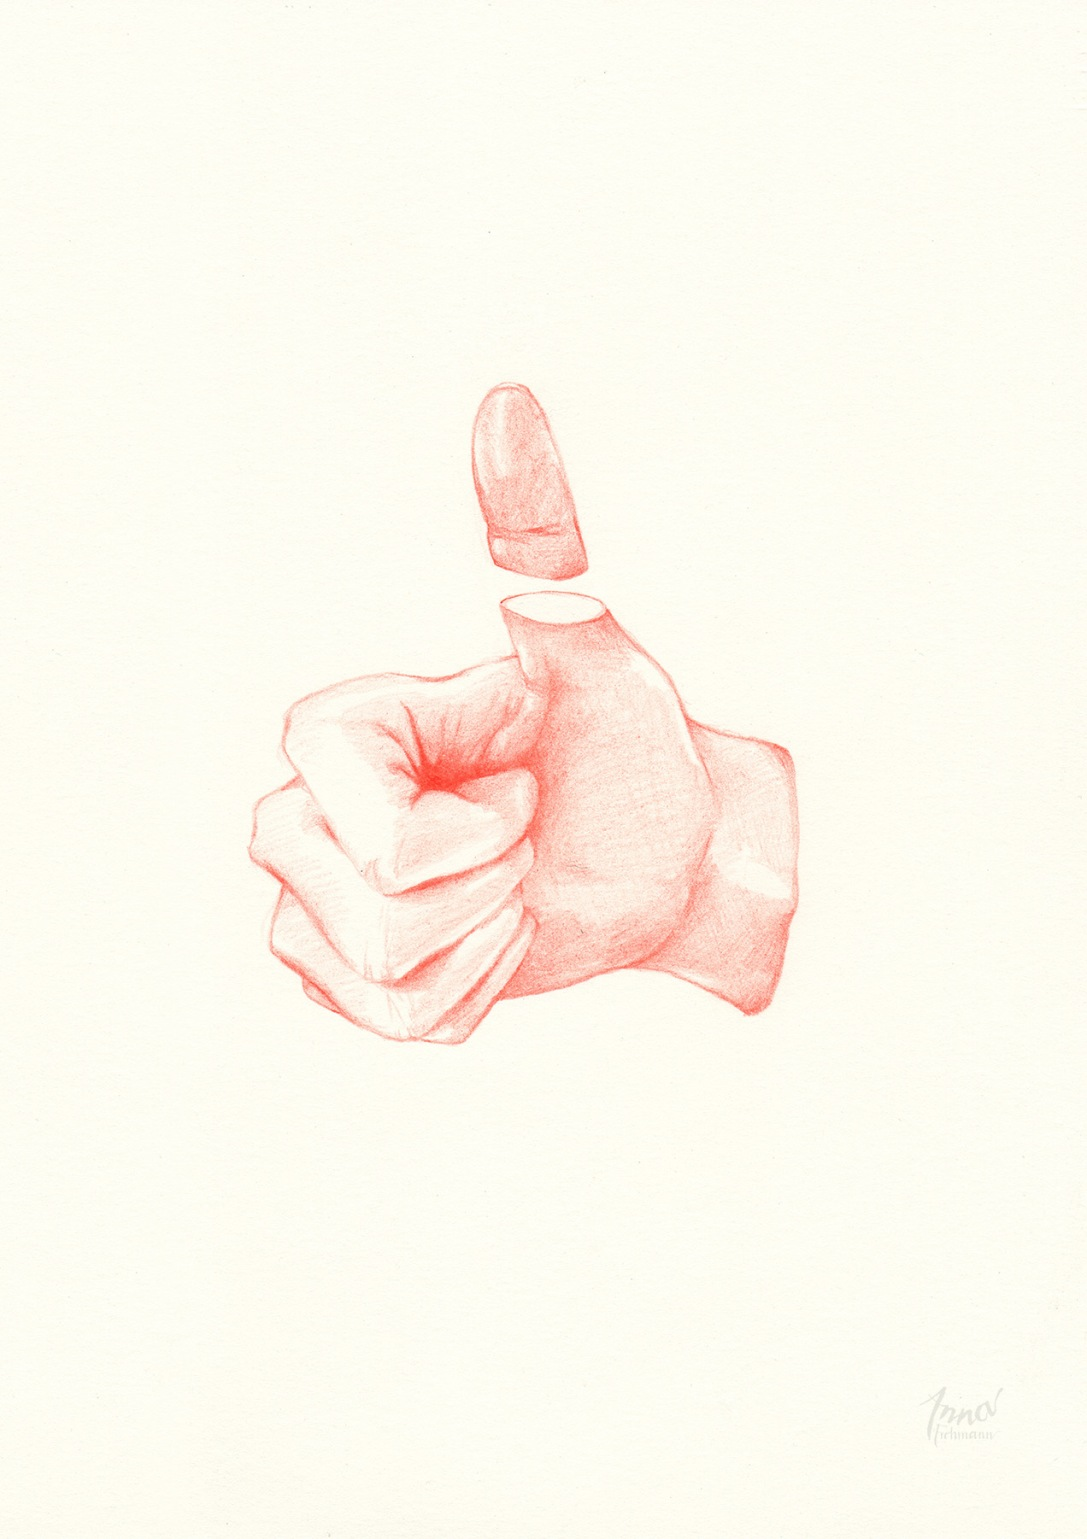 THUMBS UP | pencil on paper